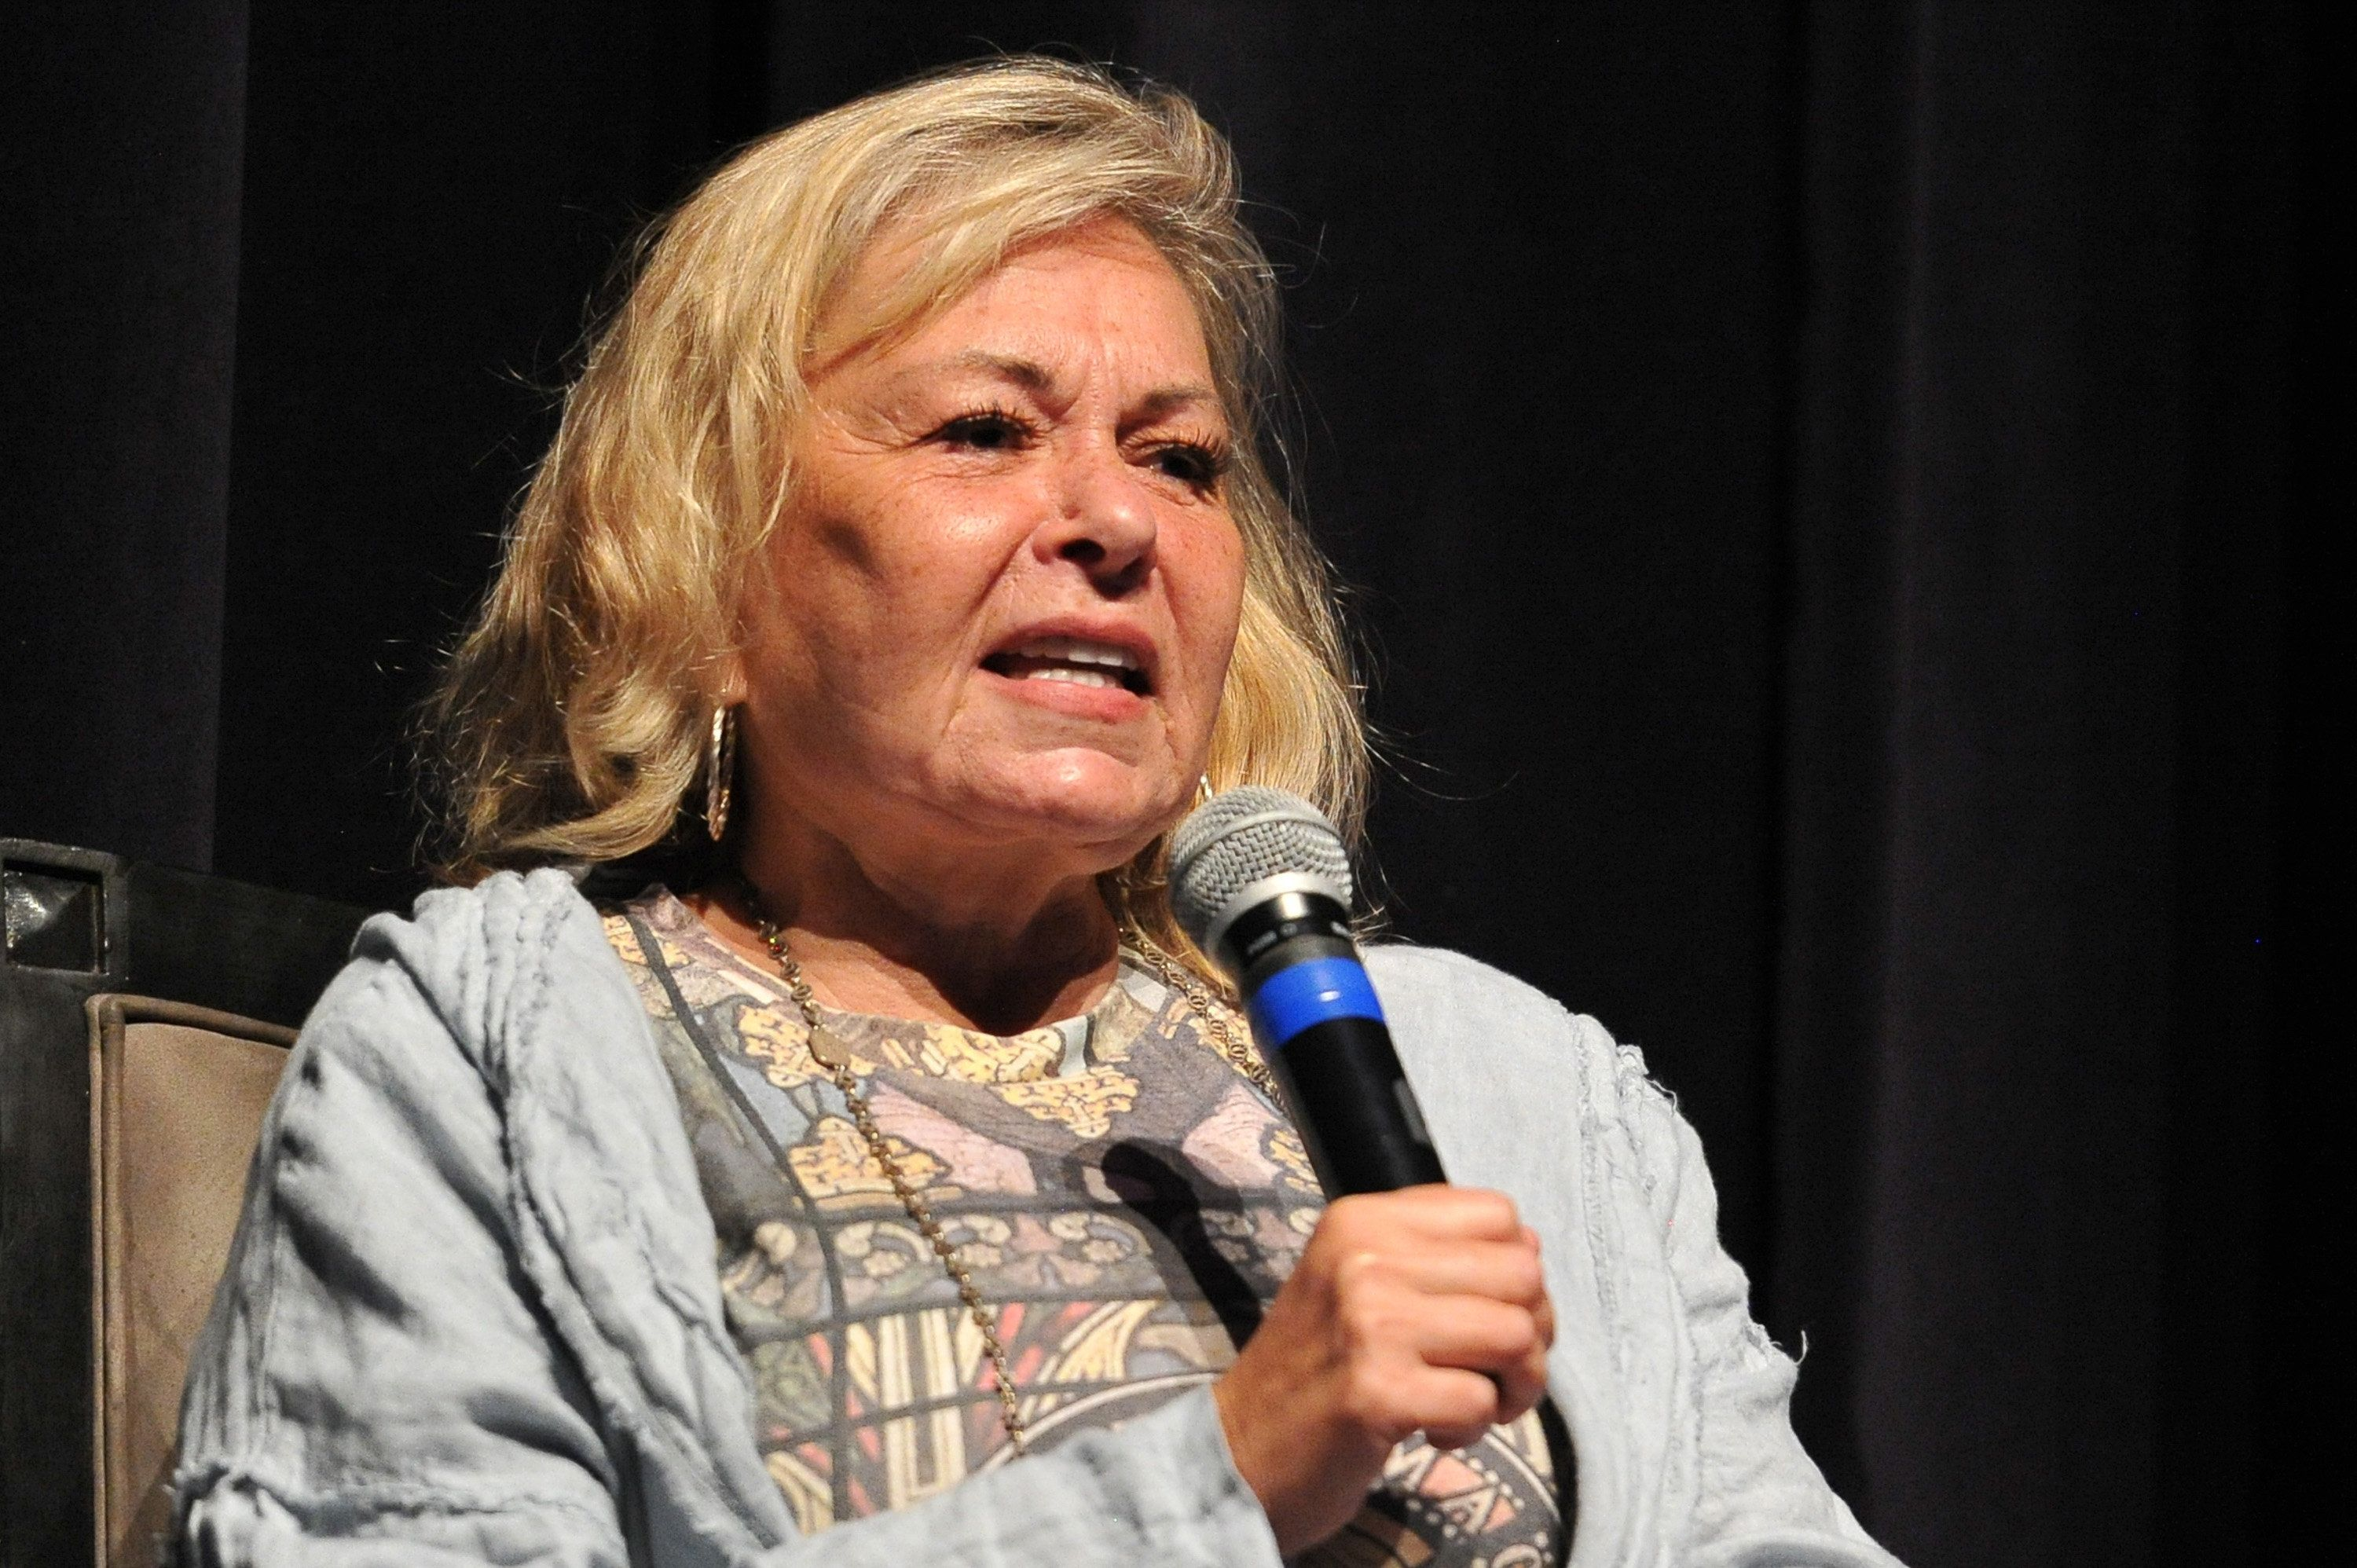 BEVERLY HILLS, CA - SEPTEMBER 17:  Roseanne Barr participates in 'Is America a Forgiving Nation?,'' a Yom Kippur eve talk on forgiveness hosted by the World Values Network and the Jewish Journal at Saban Theatre on September 17, 2018 in Beverly Hills, California.  (Photo by Rachel Luna/Getty Images)